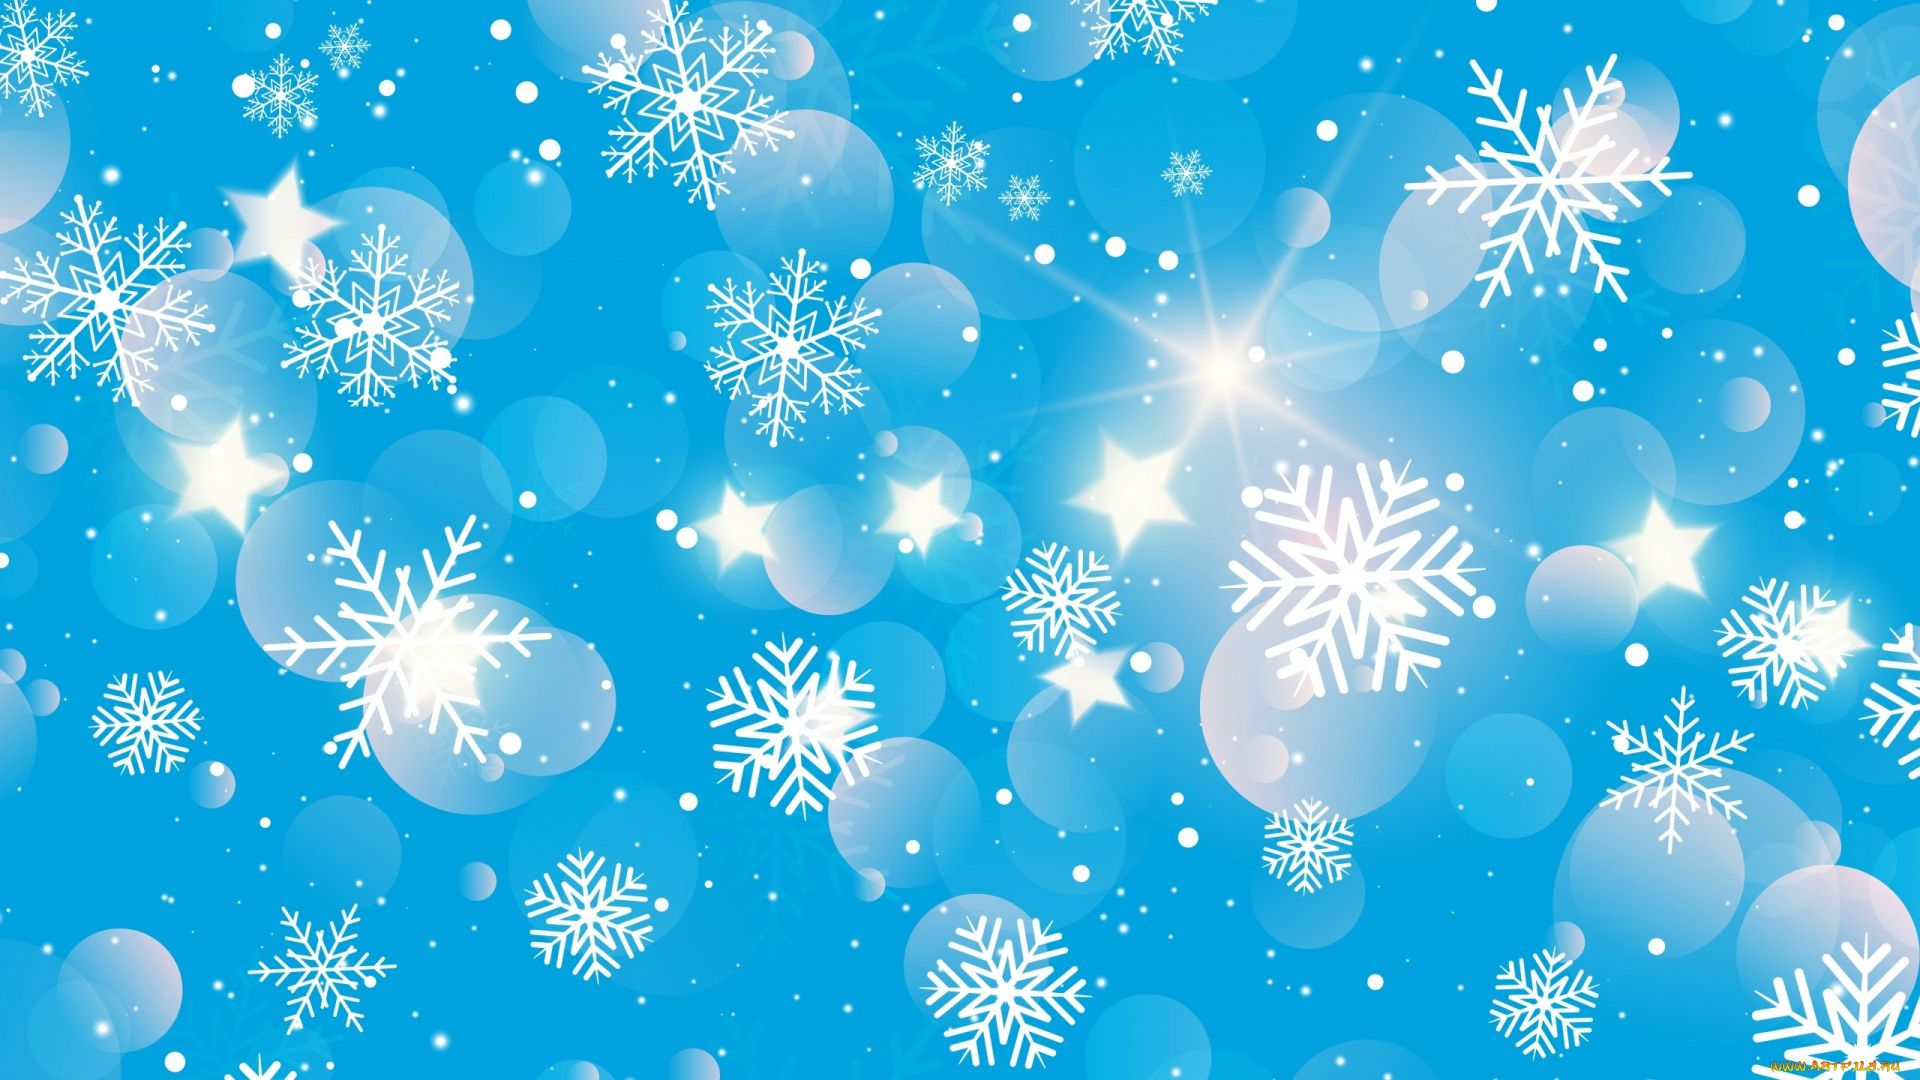 New Year With Snowflakes wallpaper image hd